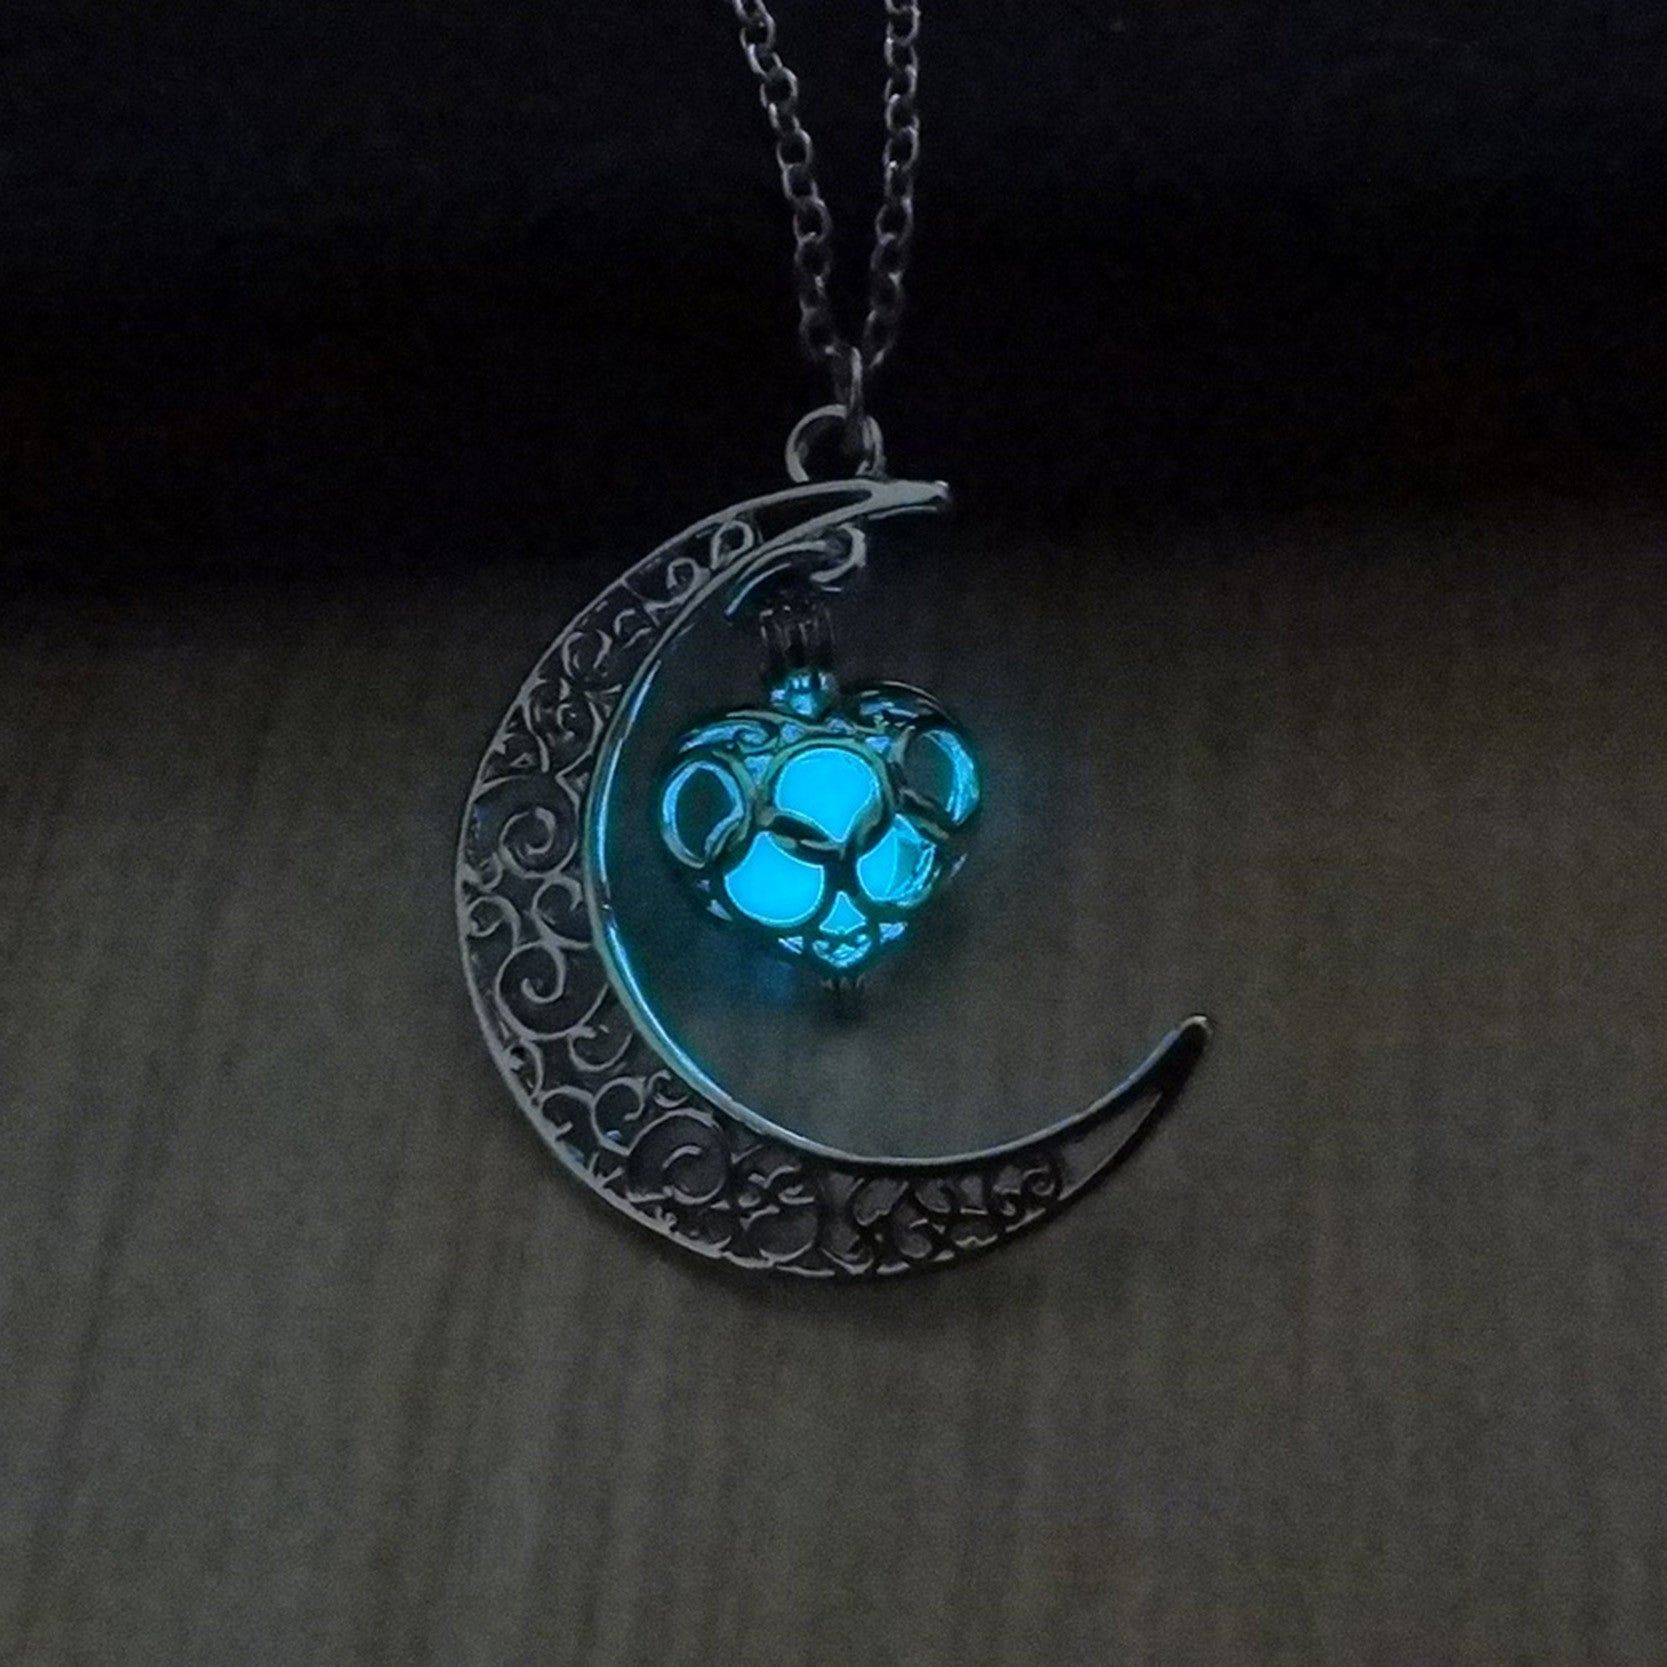 moonlight necklaces chain glow hollow the moon heart pendant necklace plated products dark proud loud gothic silver choker jewellery in jewelry glowing n